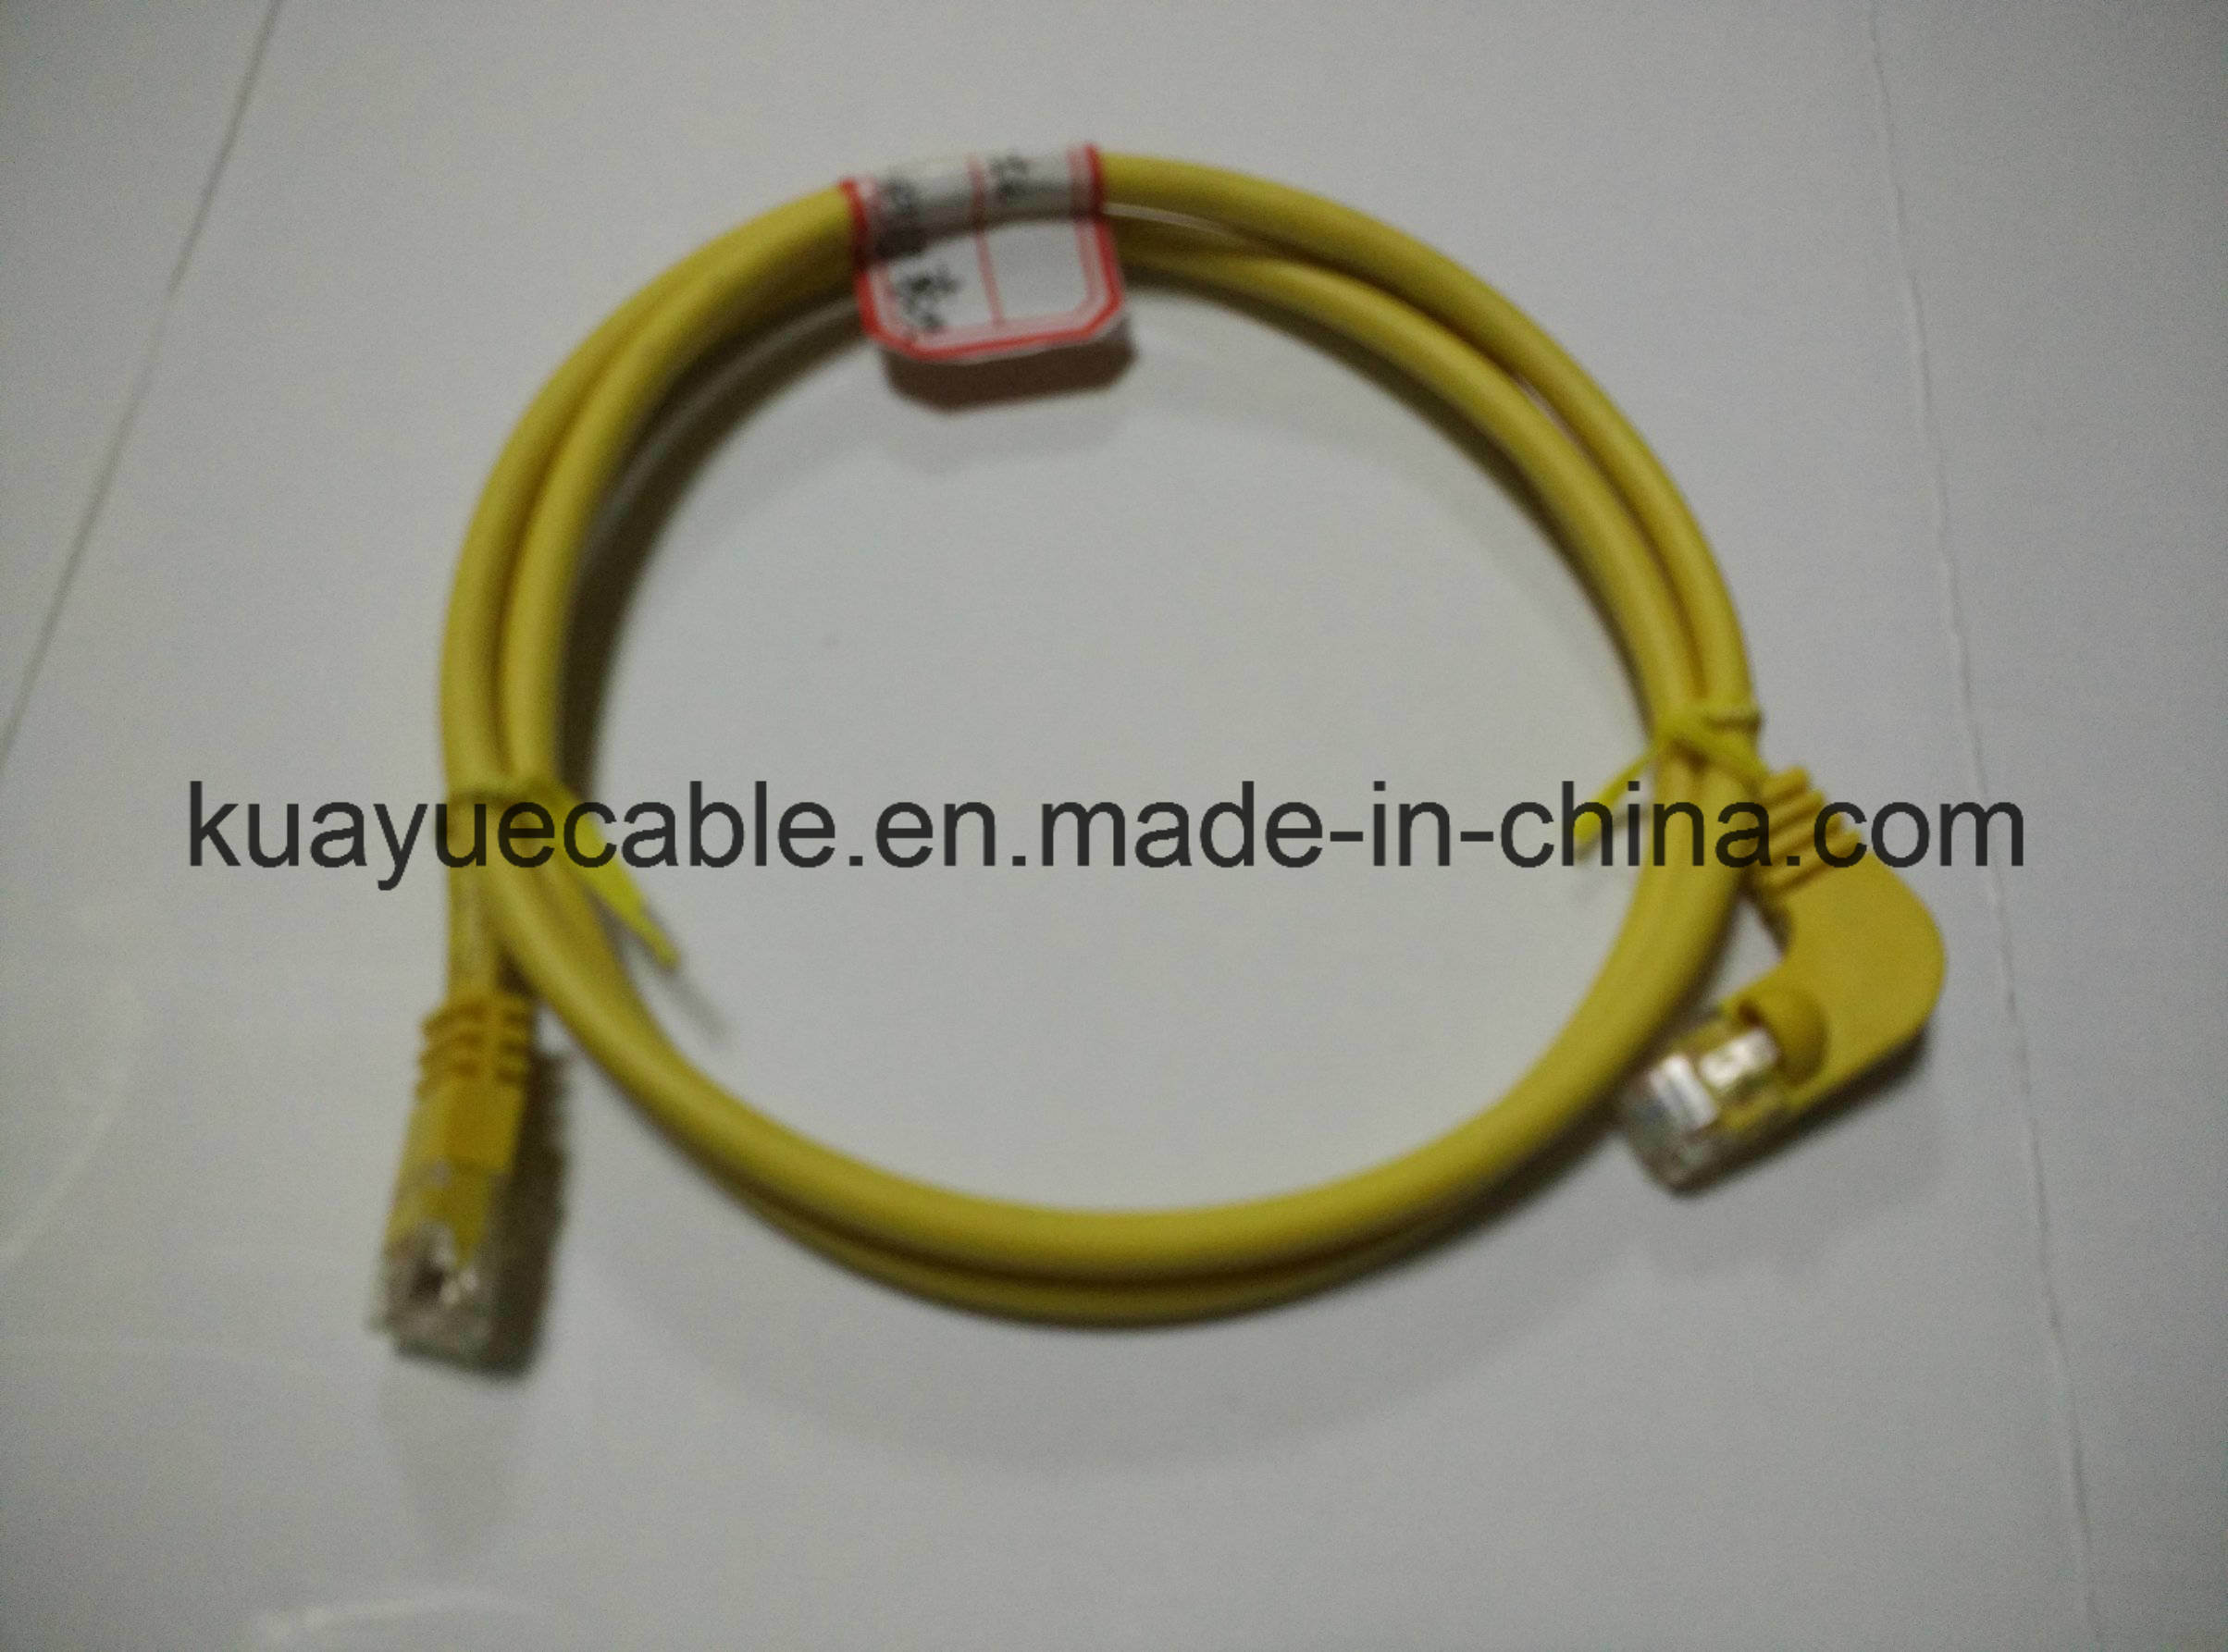 China Connector OEM RJ45 Cat5e Patch Cable/Cable Cat 6/ Wire Cable ...